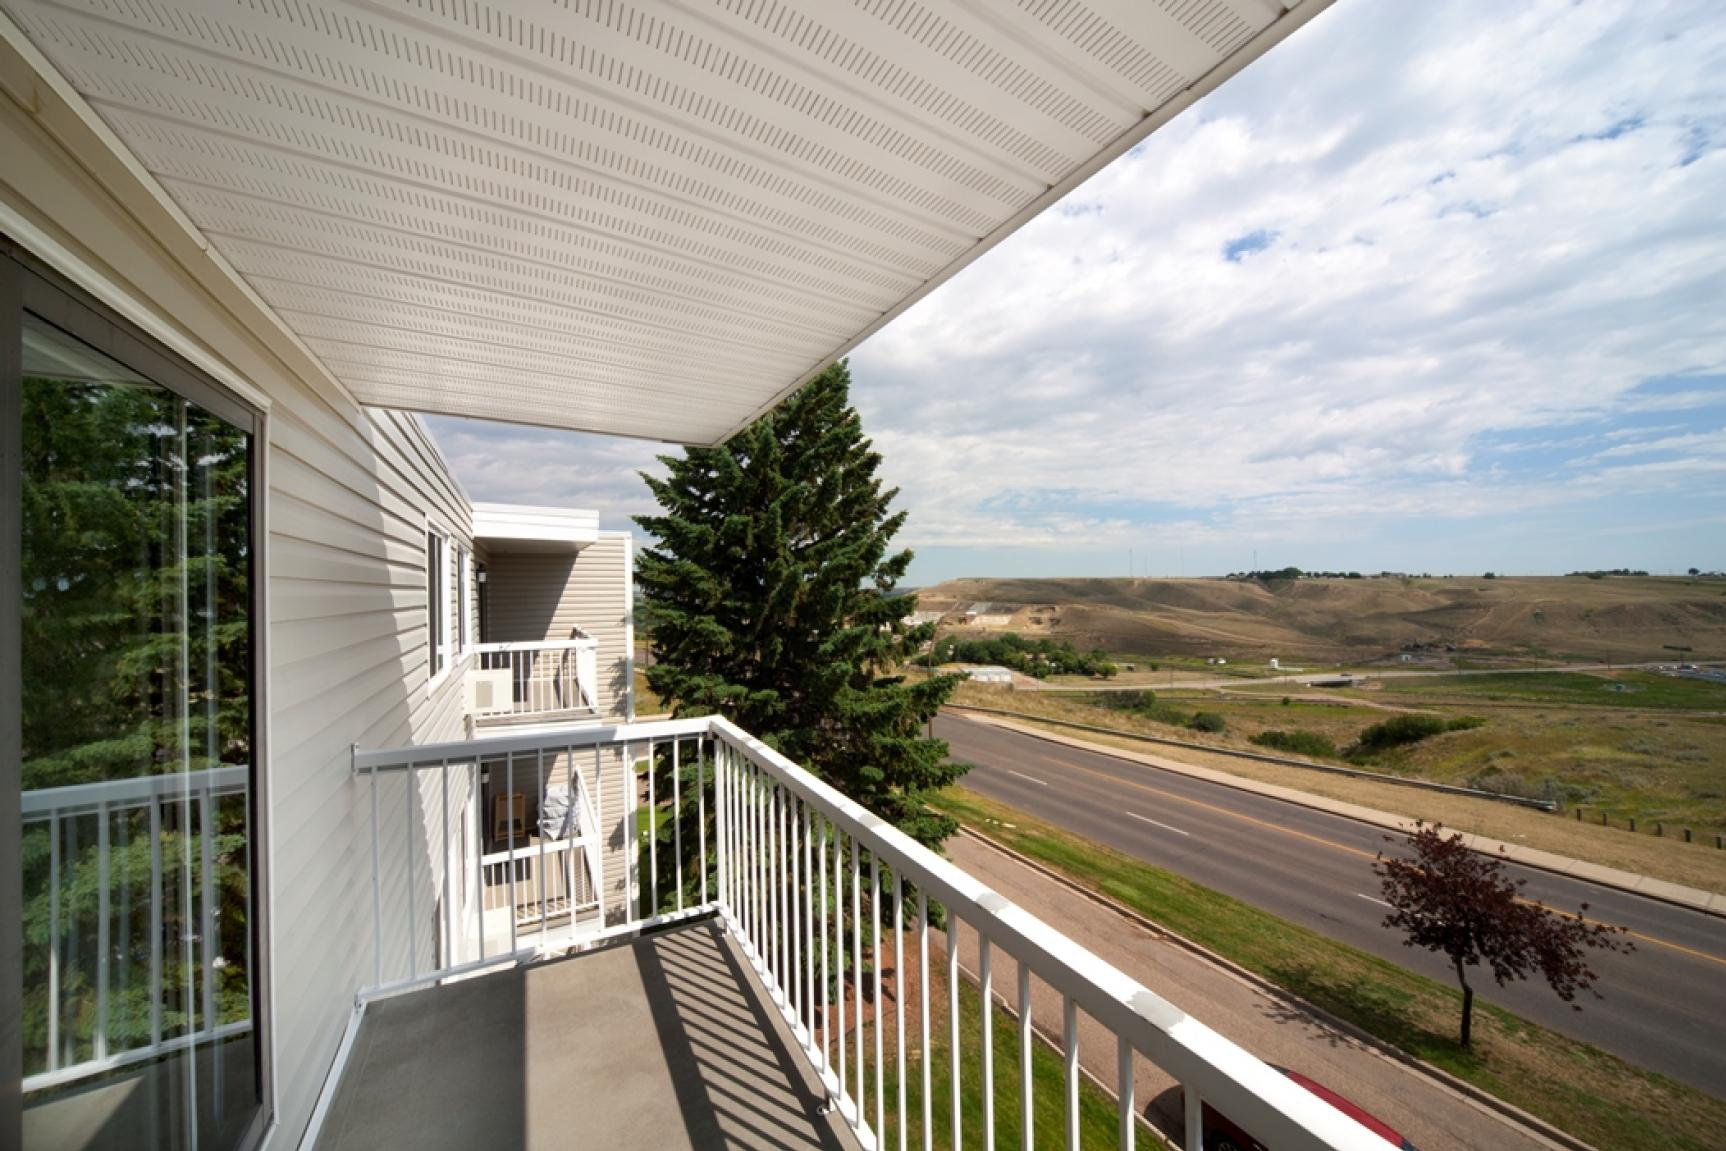 A005 64 Corbitt Way in Medicine Hat, AB